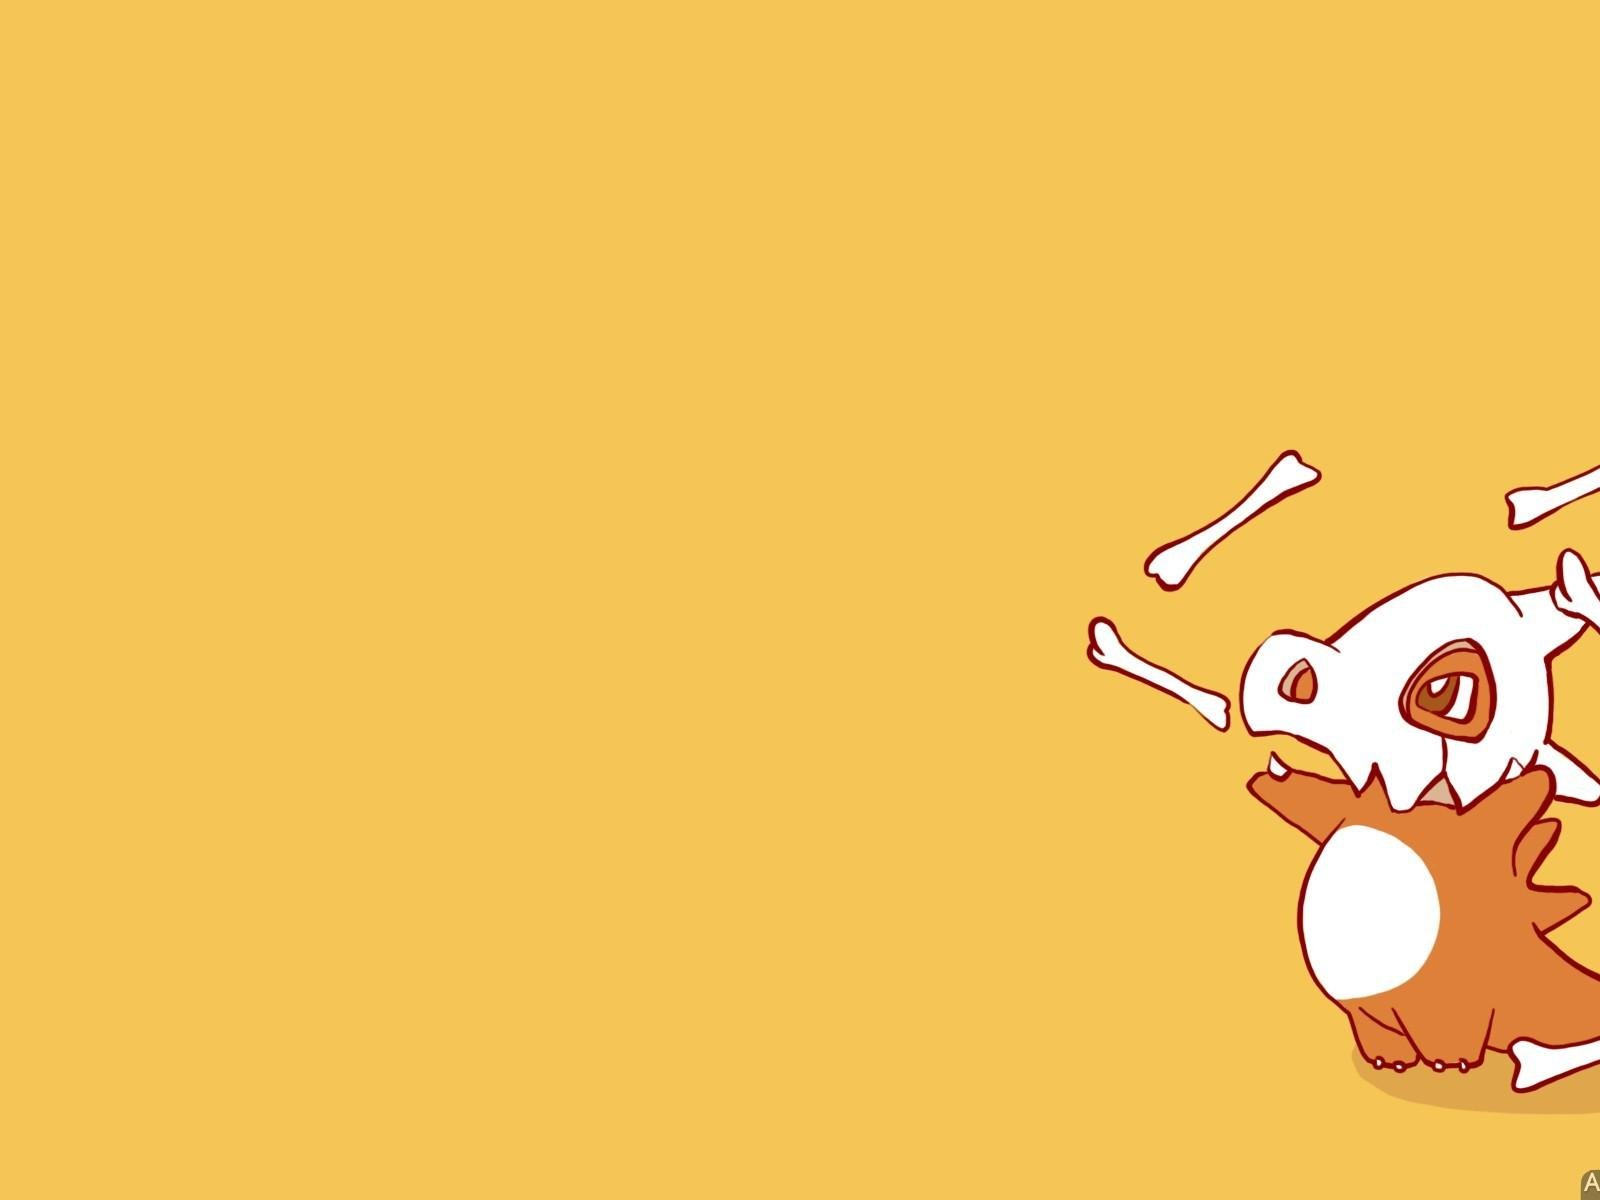 Pokemon video games cubone wallpaper 48280 1600x1200